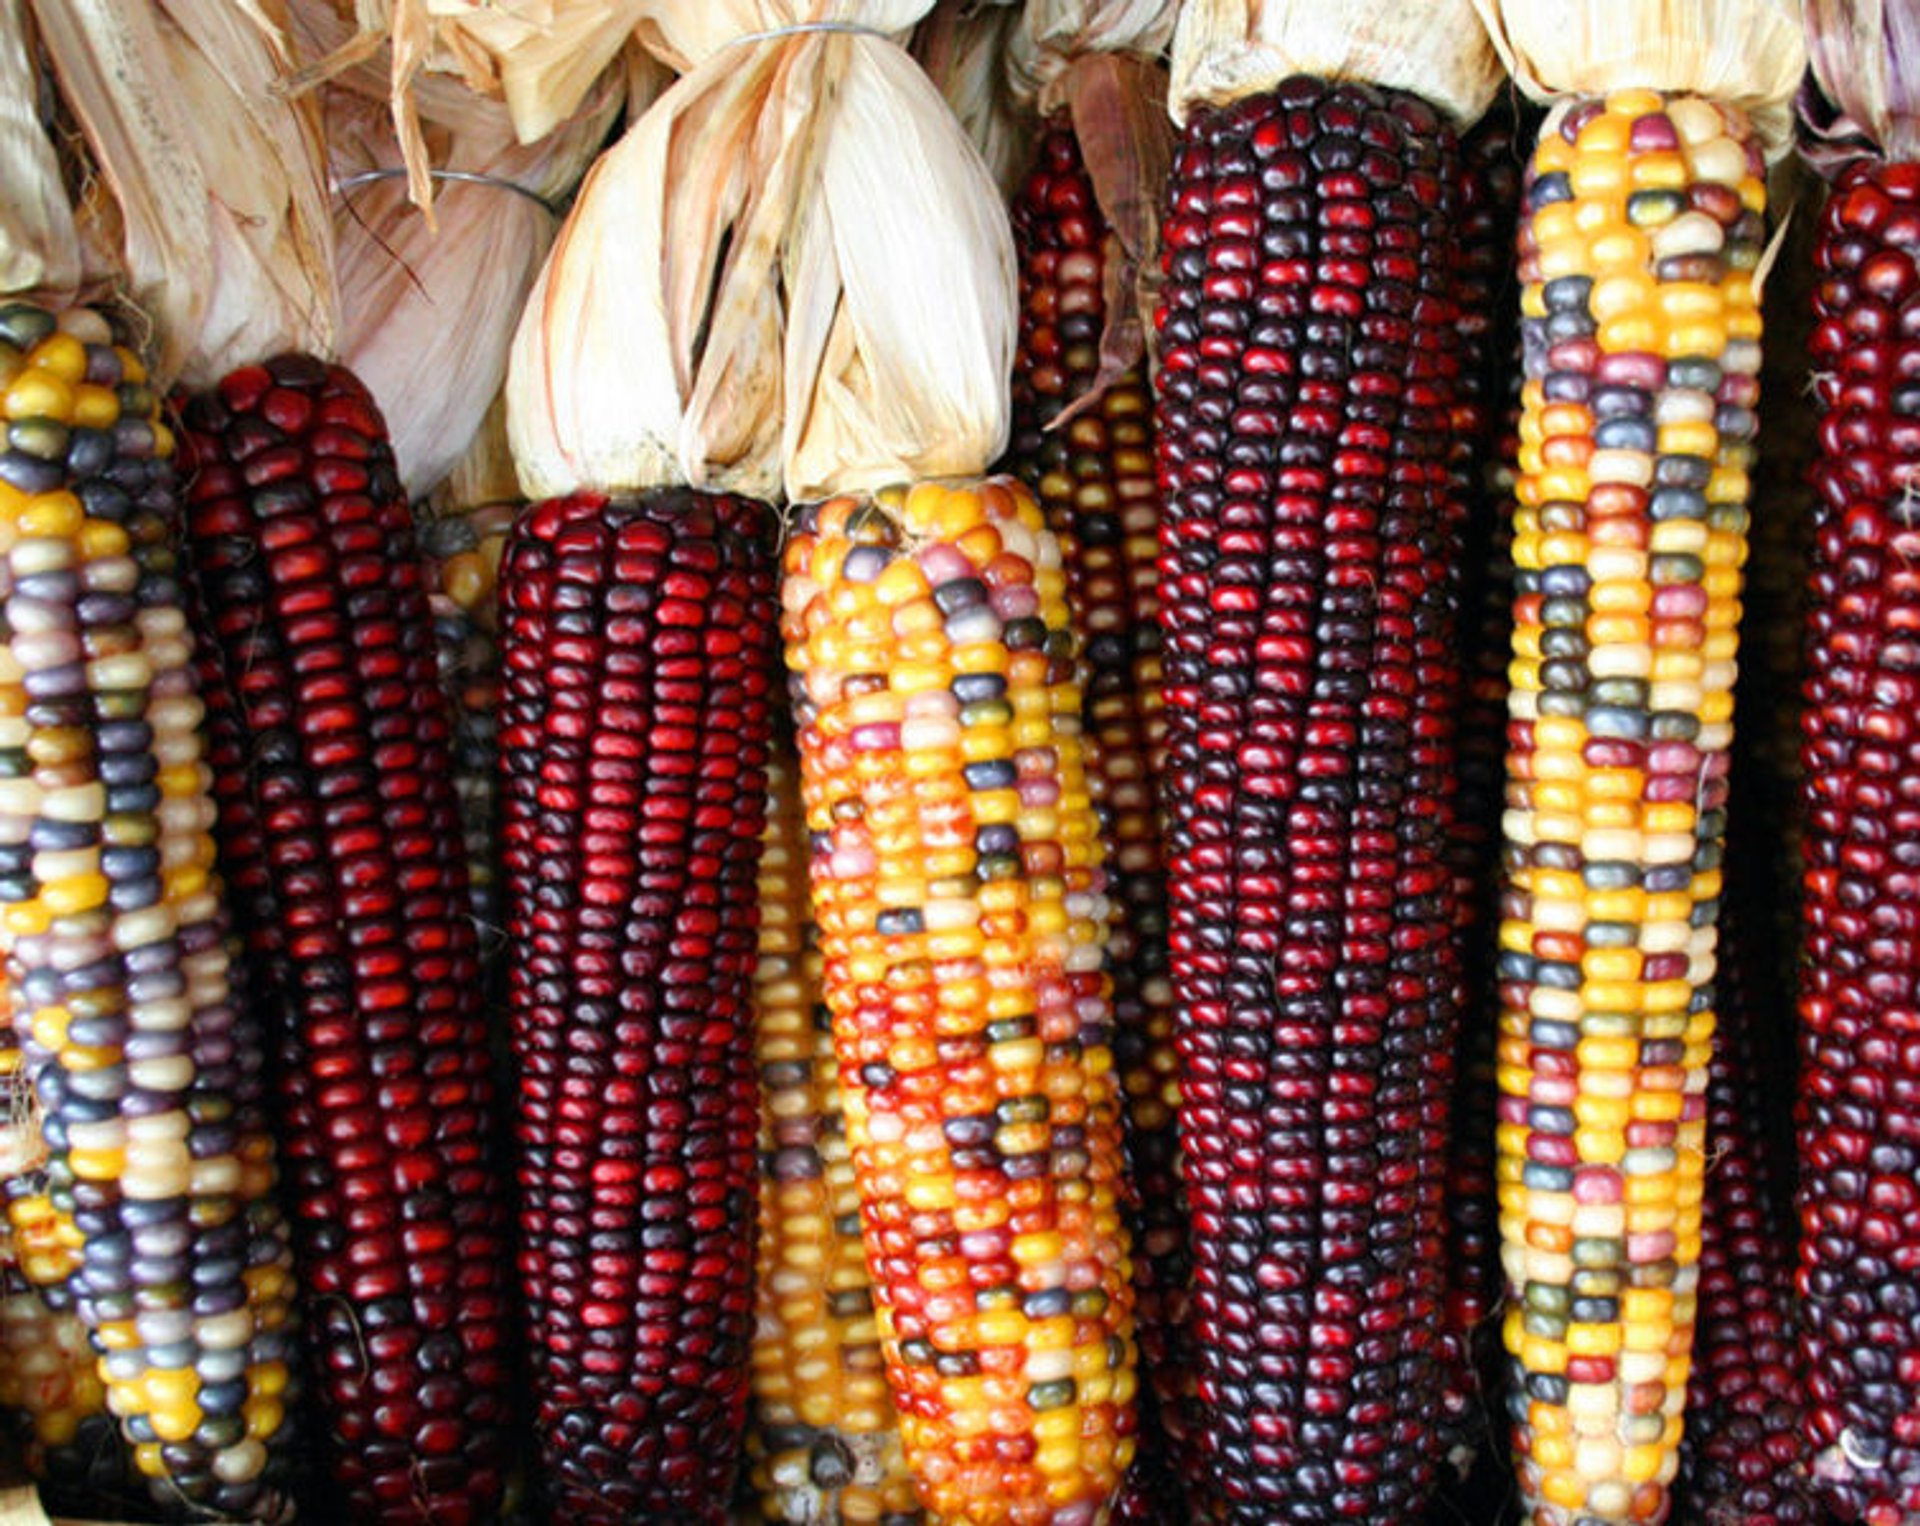 Corn Specialties in Guatemala 2019 - Best Time